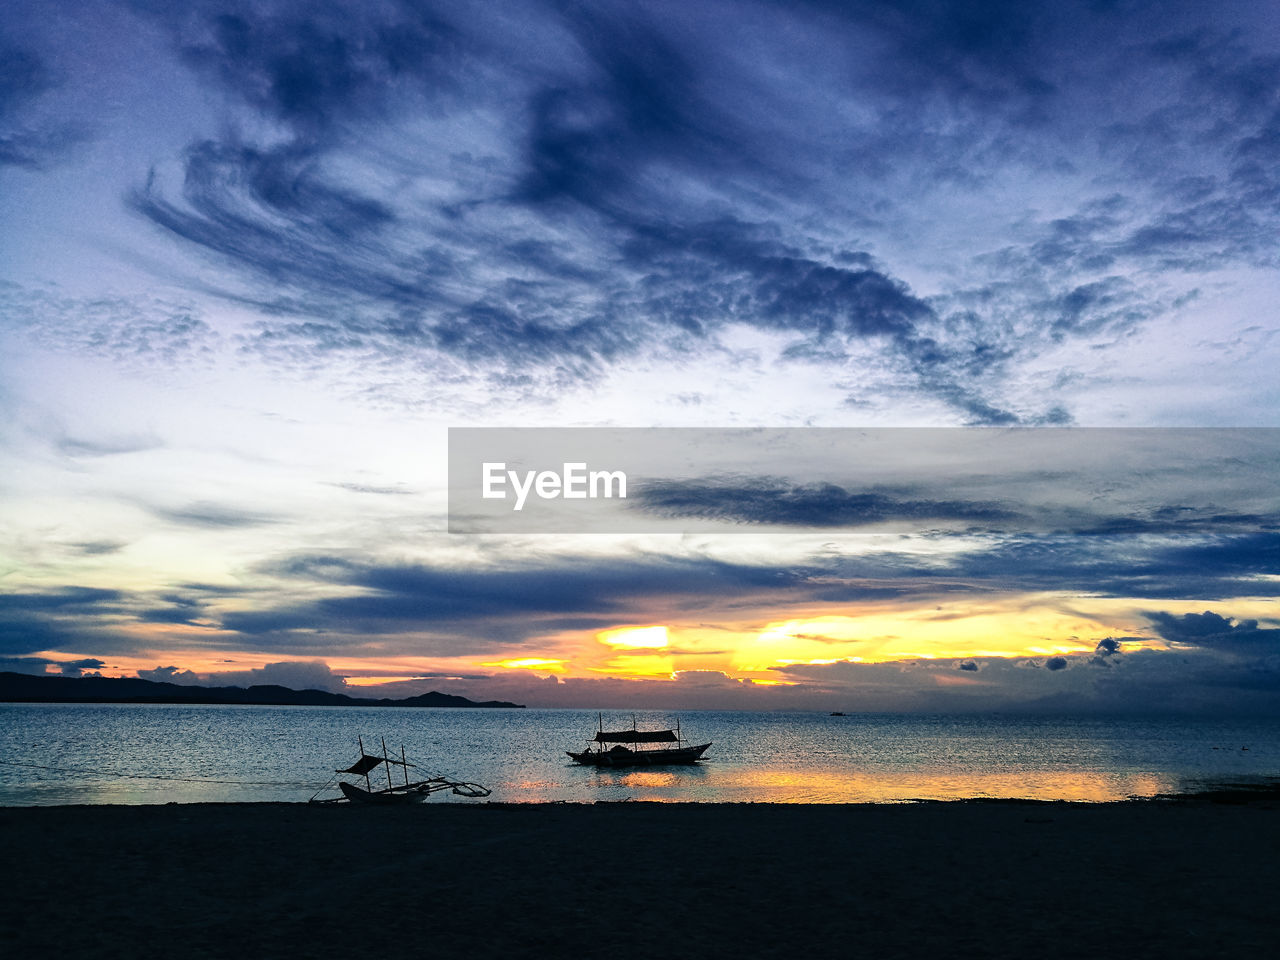 water, sea, sunset, beauty in nature, sky, nature, scenics, nautical vessel, horizon over water, cloud - sky, tranquility, transportation, tranquil scene, beach, mode of transport, outdoors, silhouette, no people, jet boat, day